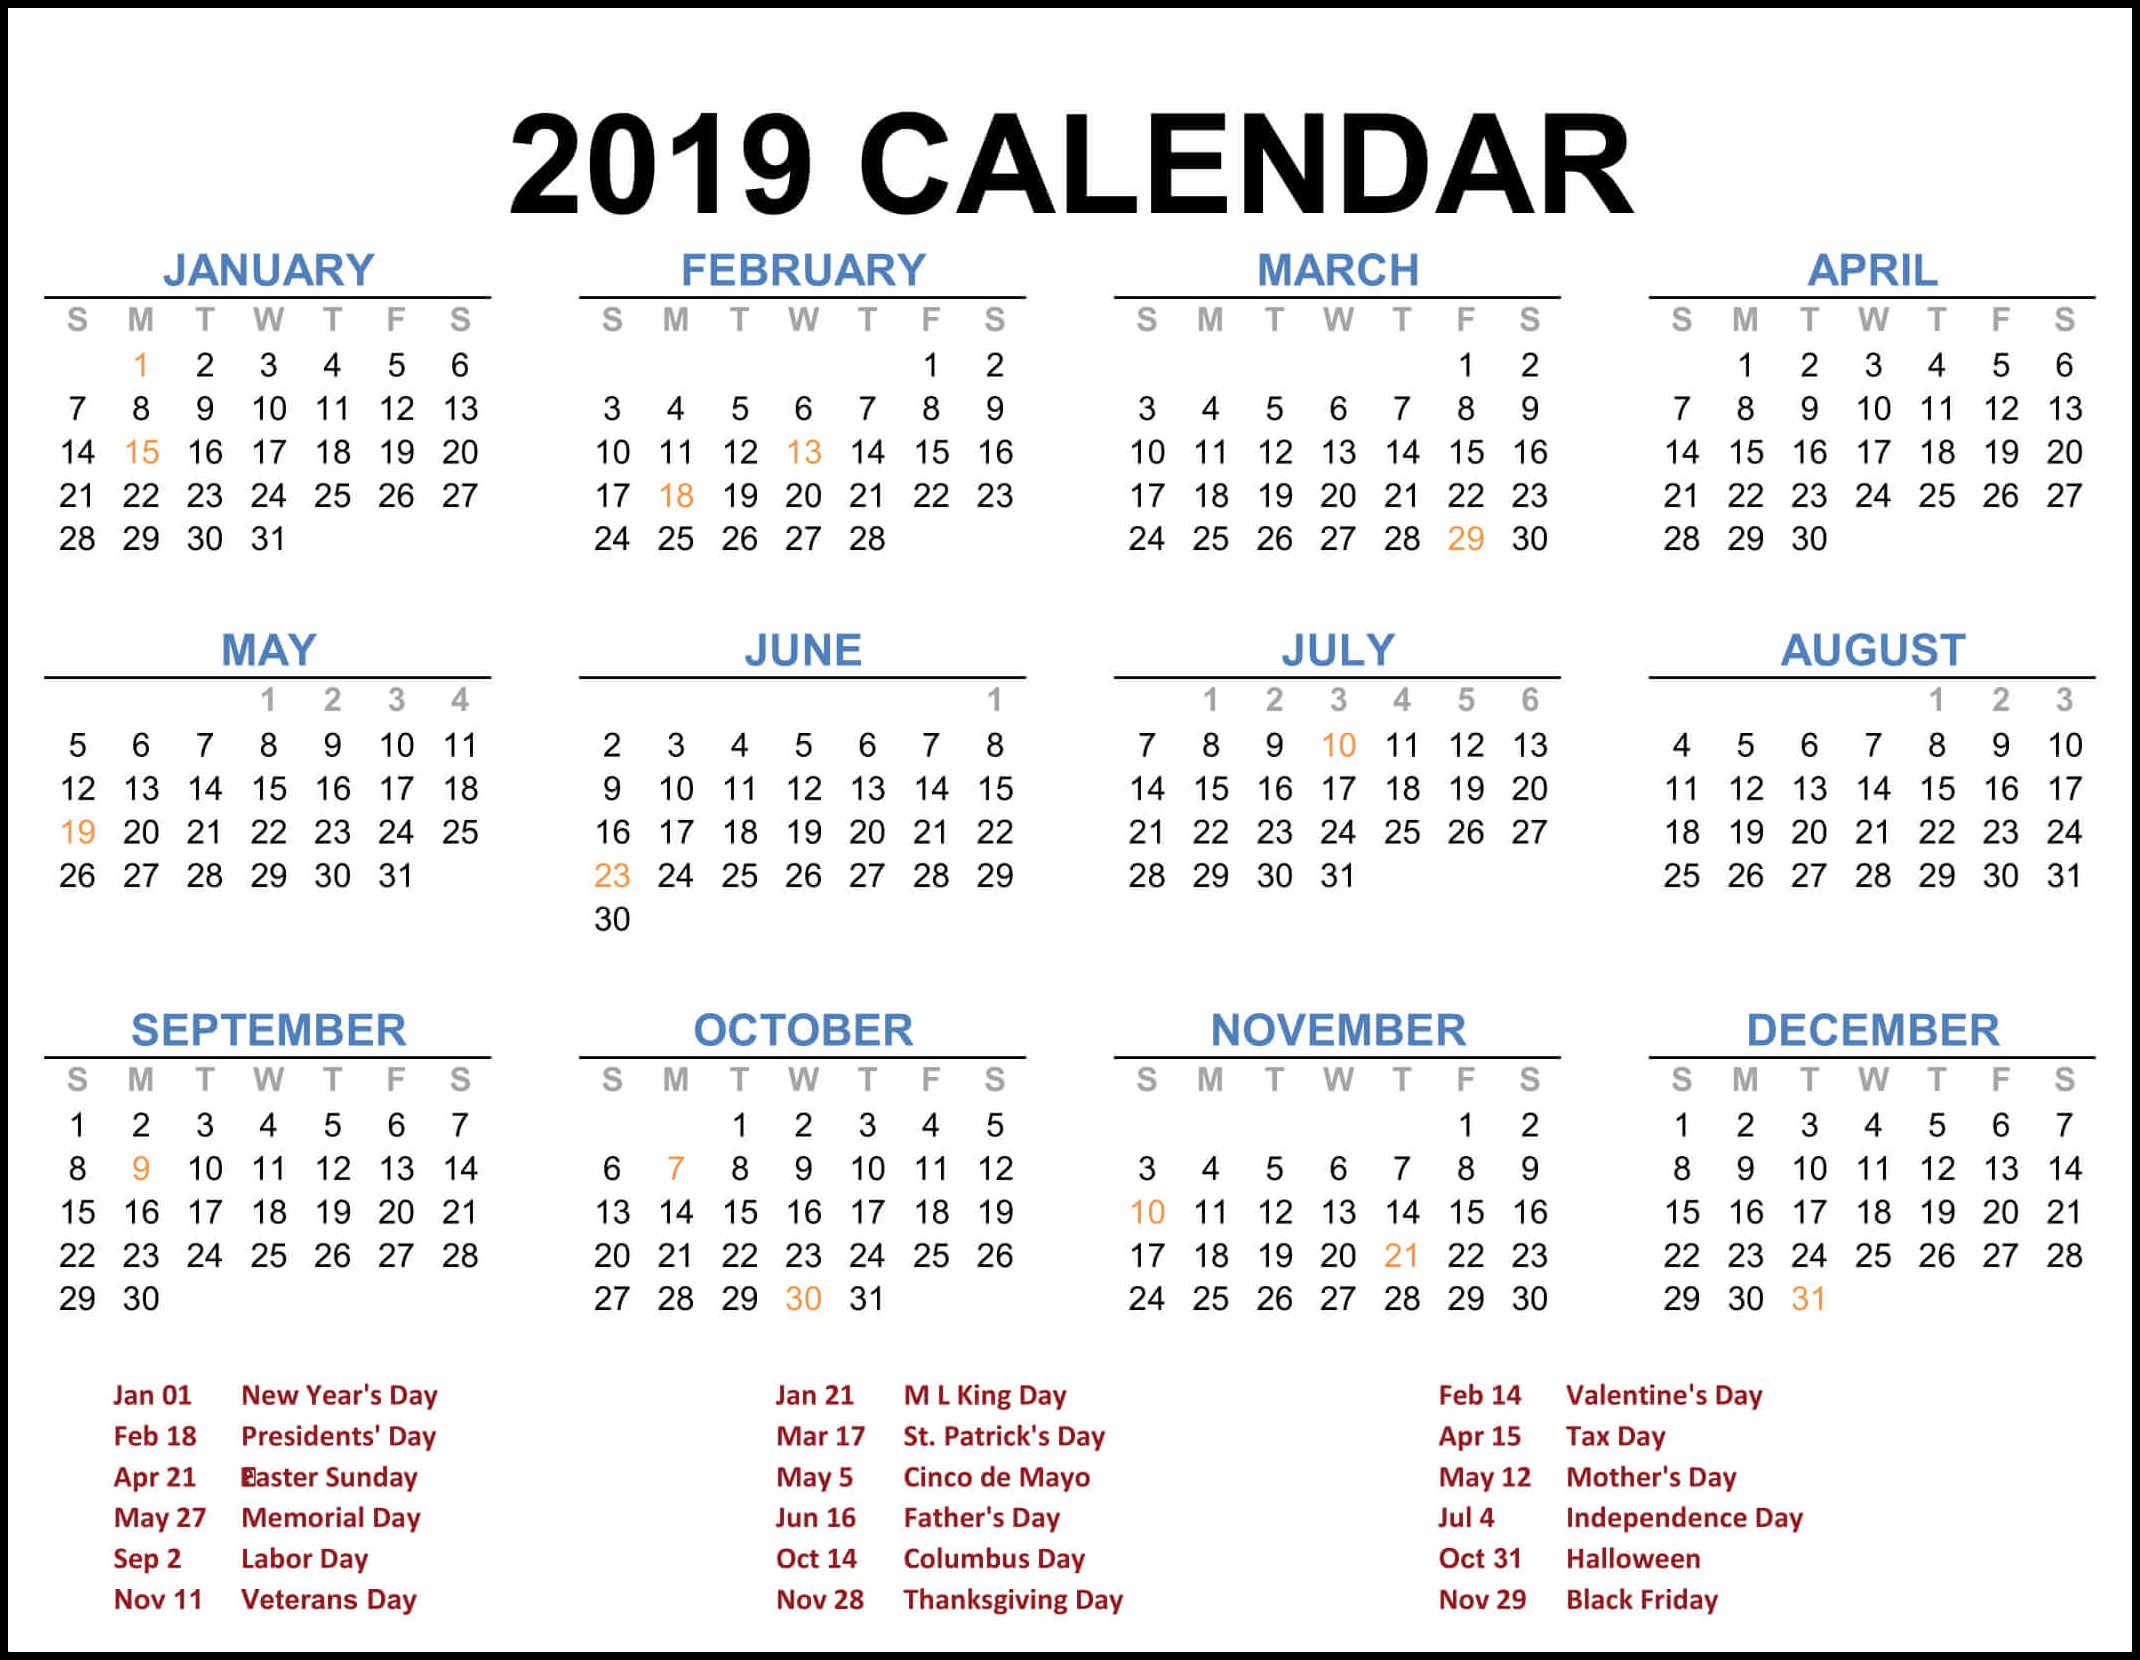 2019 Federal Holiday Calendar